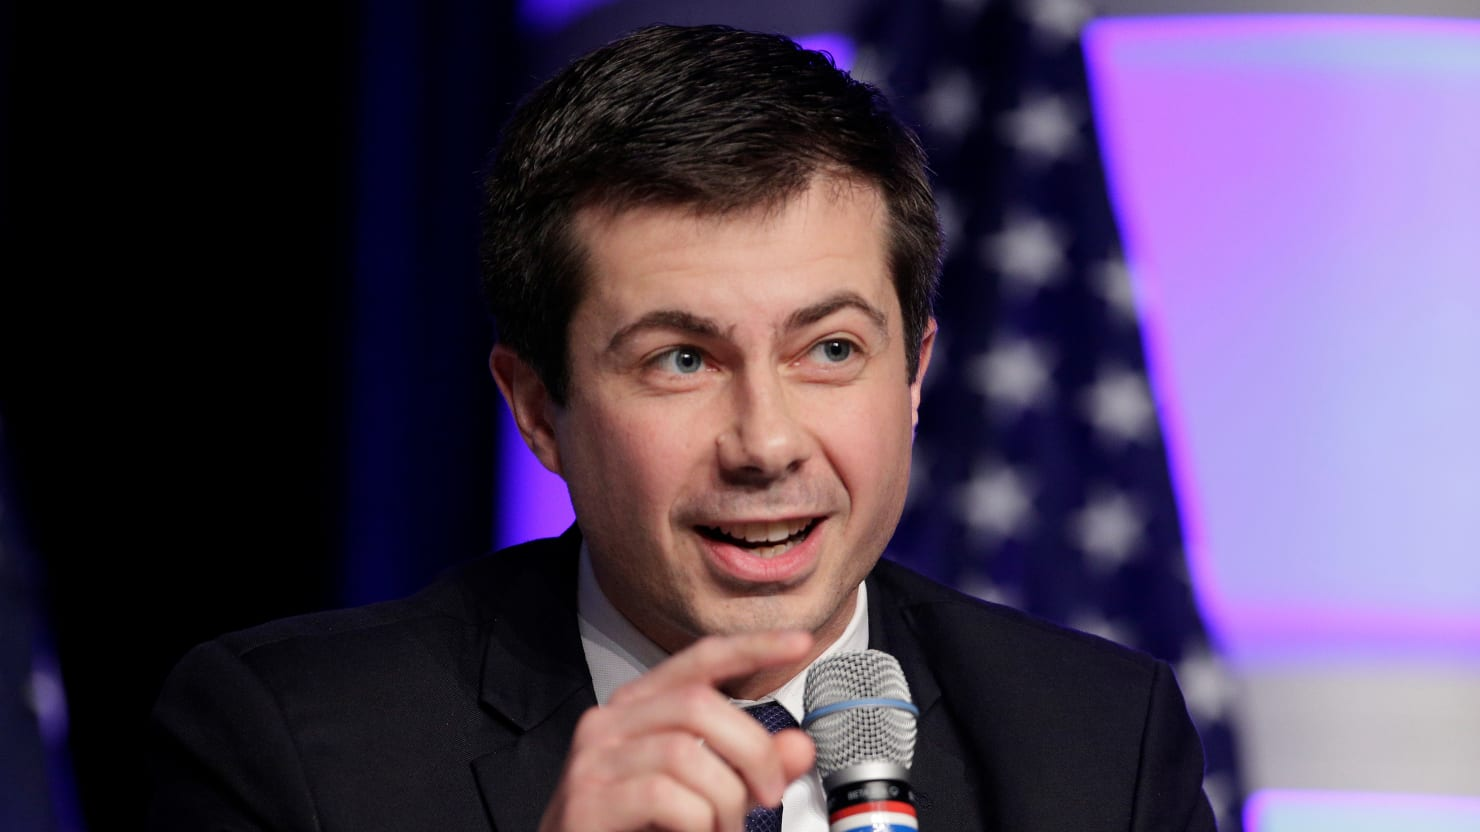 Buttigieg Tells Cops to Use Body Cams When Meeting Civilians After South Bend Shooting